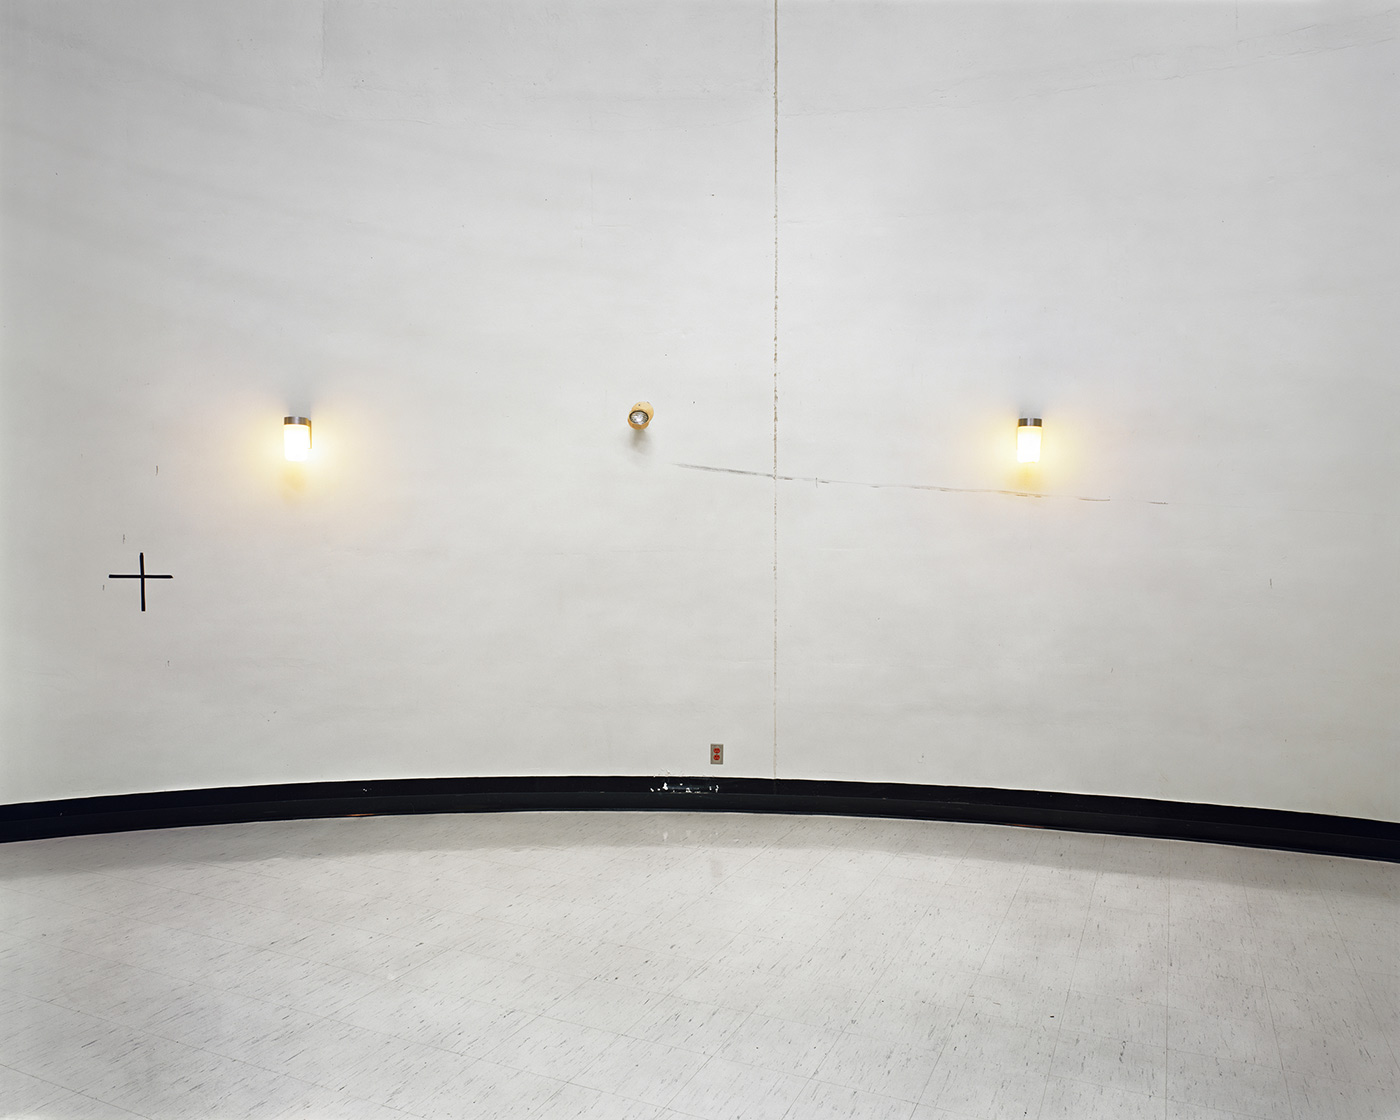 Untitled (two lights), 2003-2012